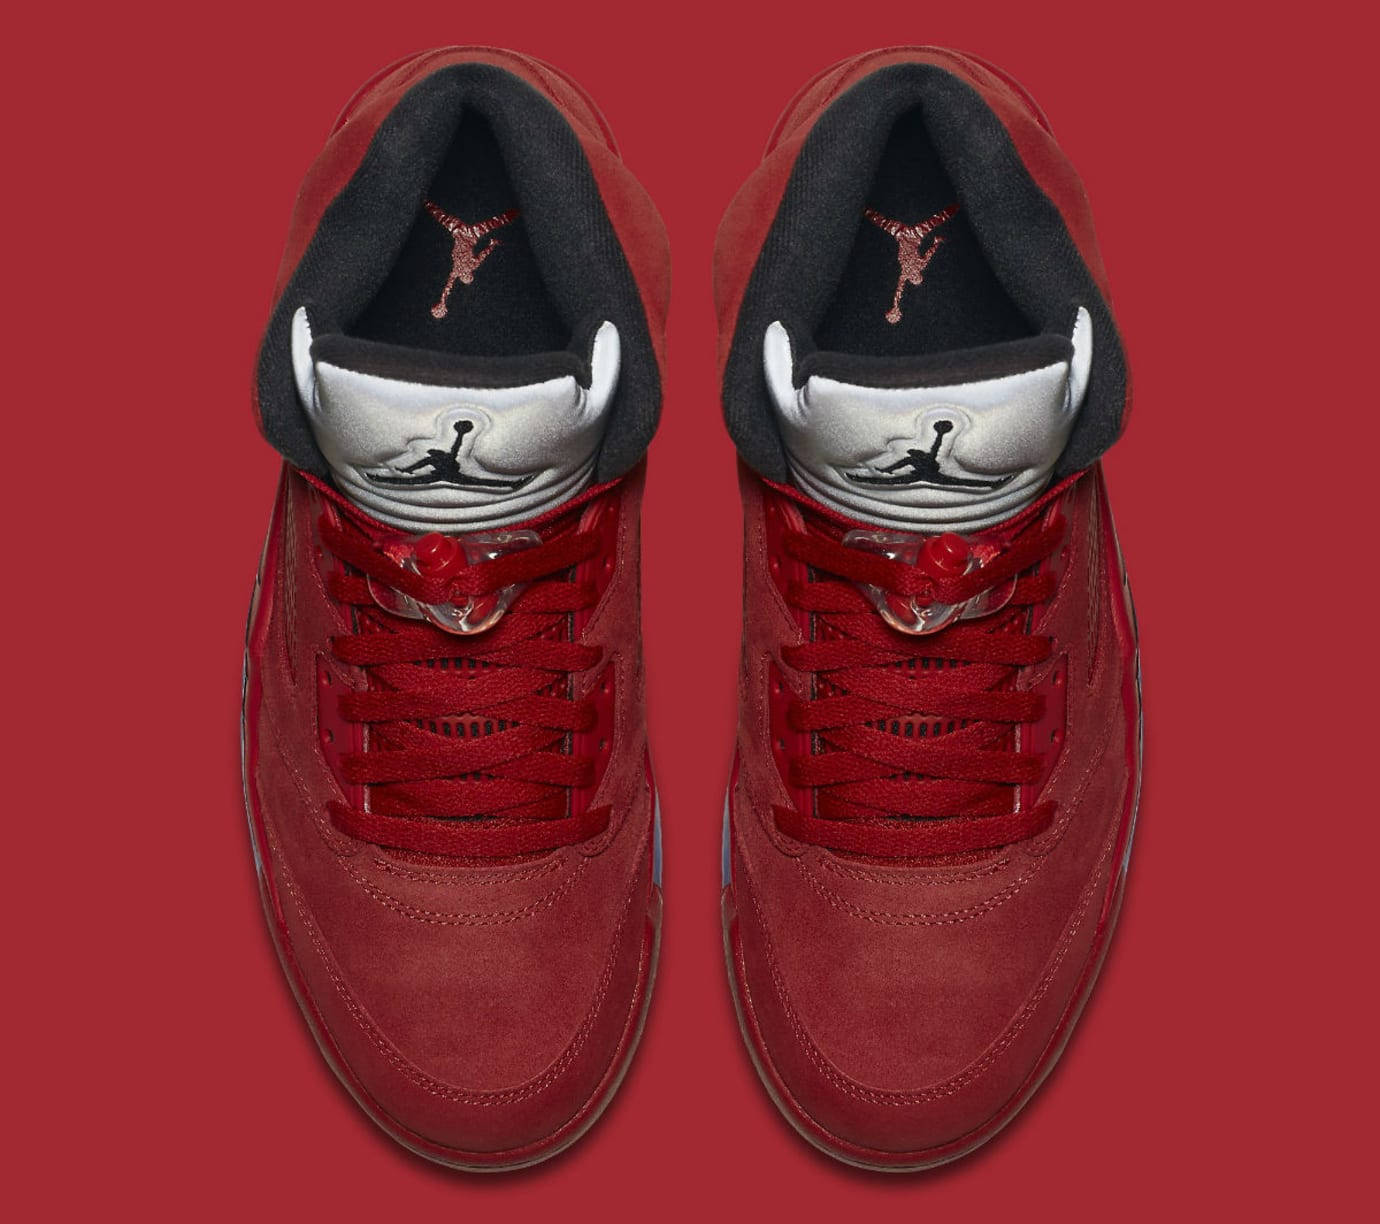 Air Jordan 5 Red Suede Release Date Top 136027-602